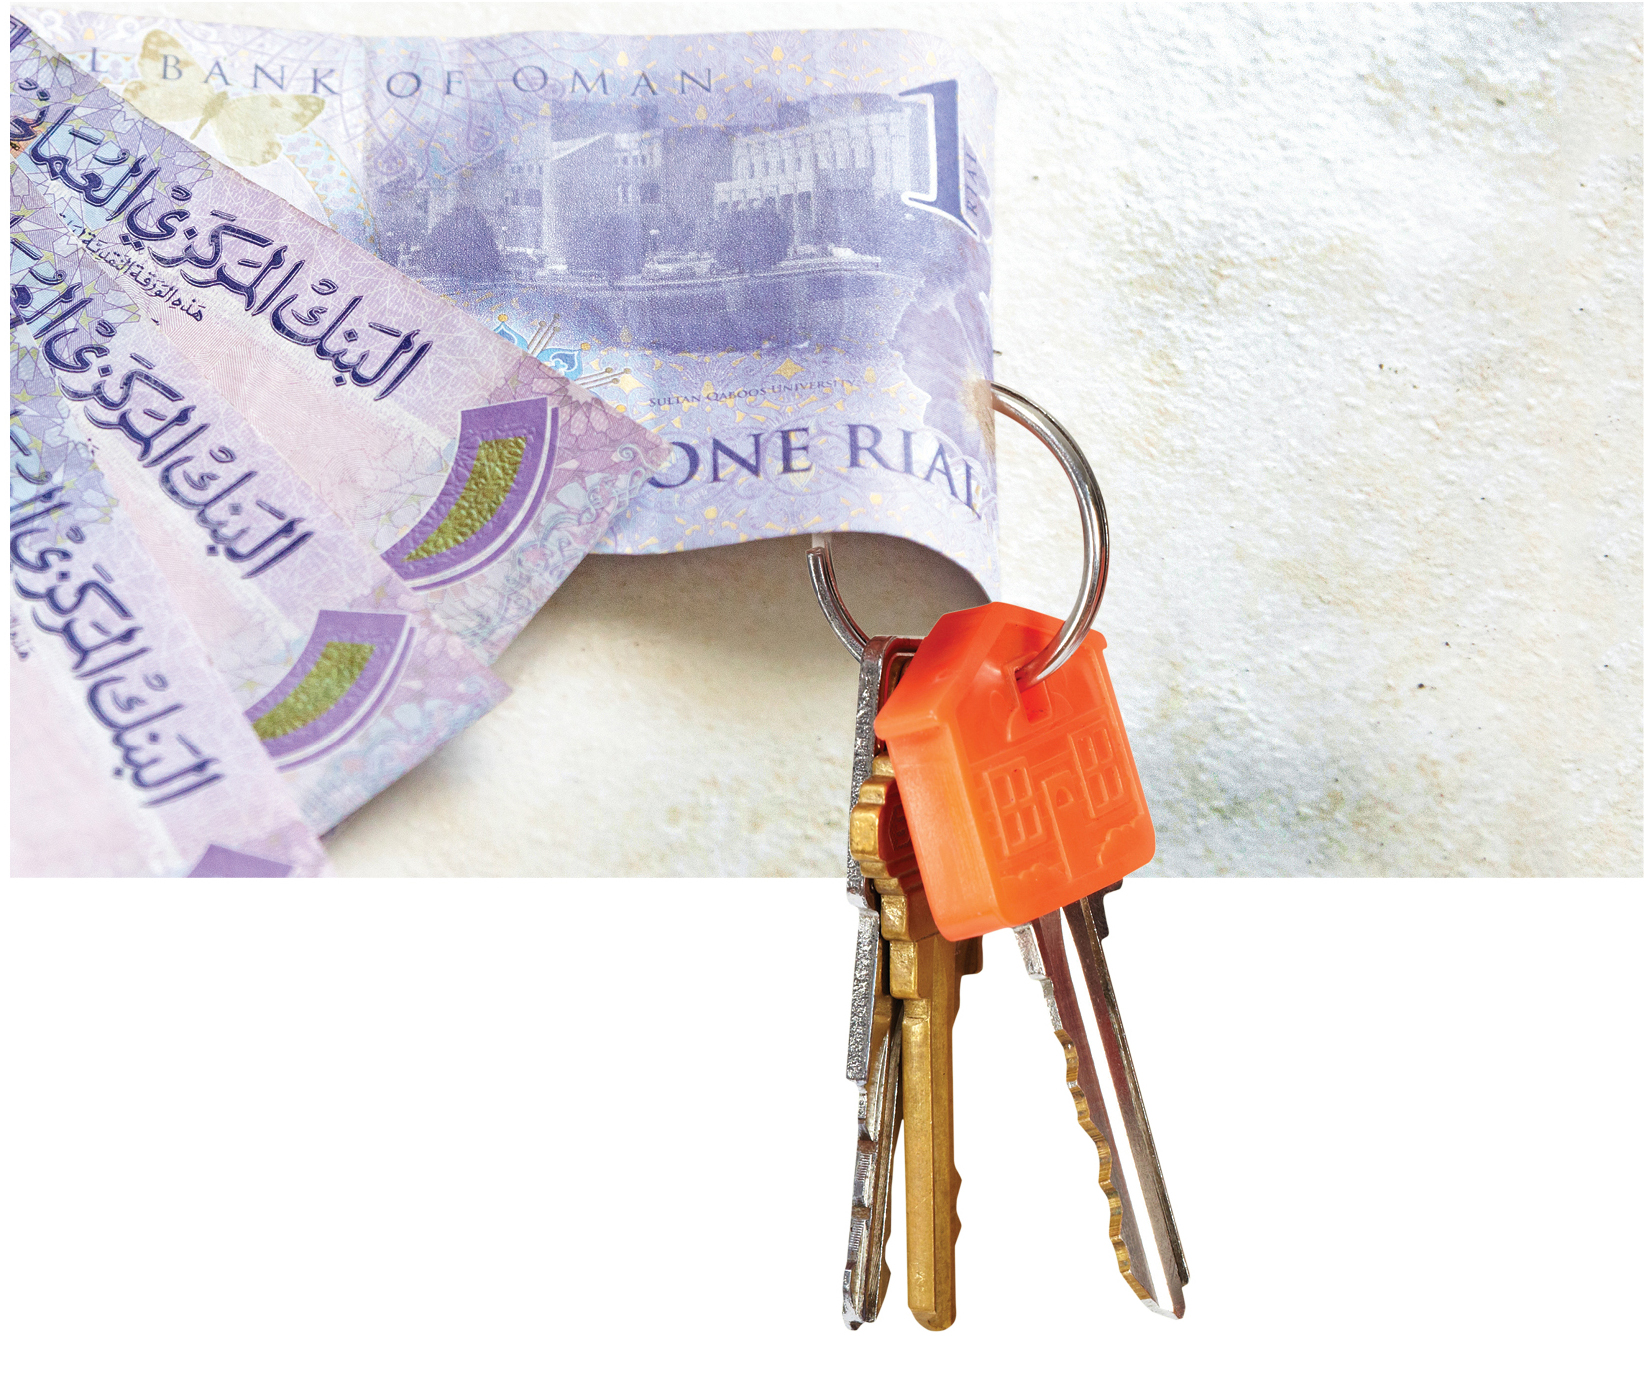 Are you paying OMR1 monthly rent in Oman?